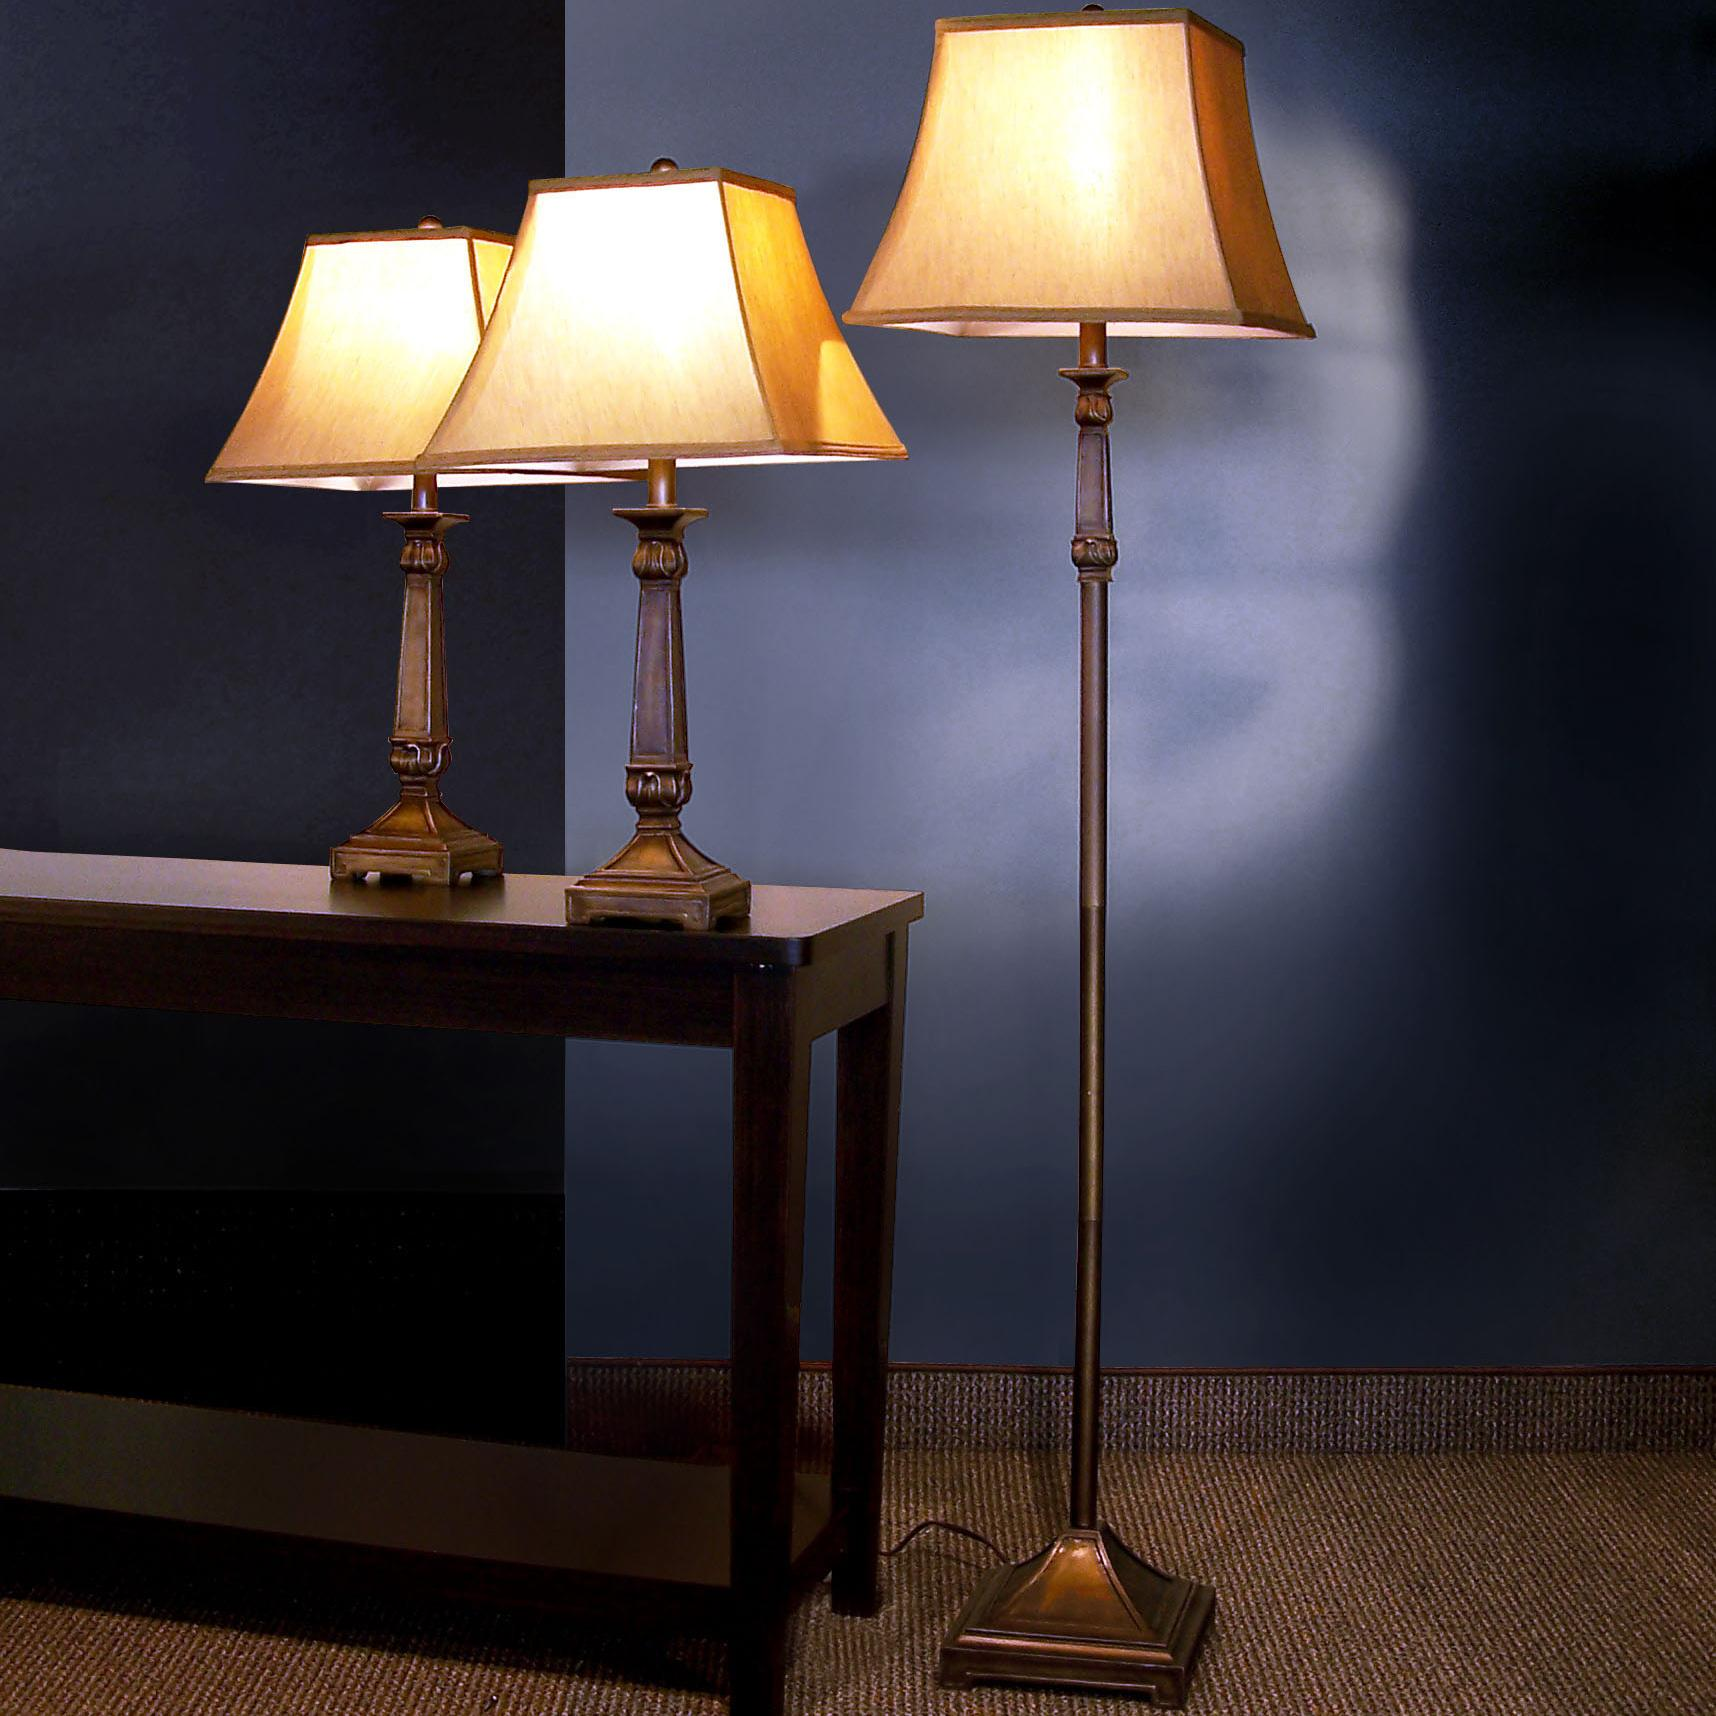 Coaster 3 Pack Lamp Sets 3 Piece Lamp Set - Item Number: 901160